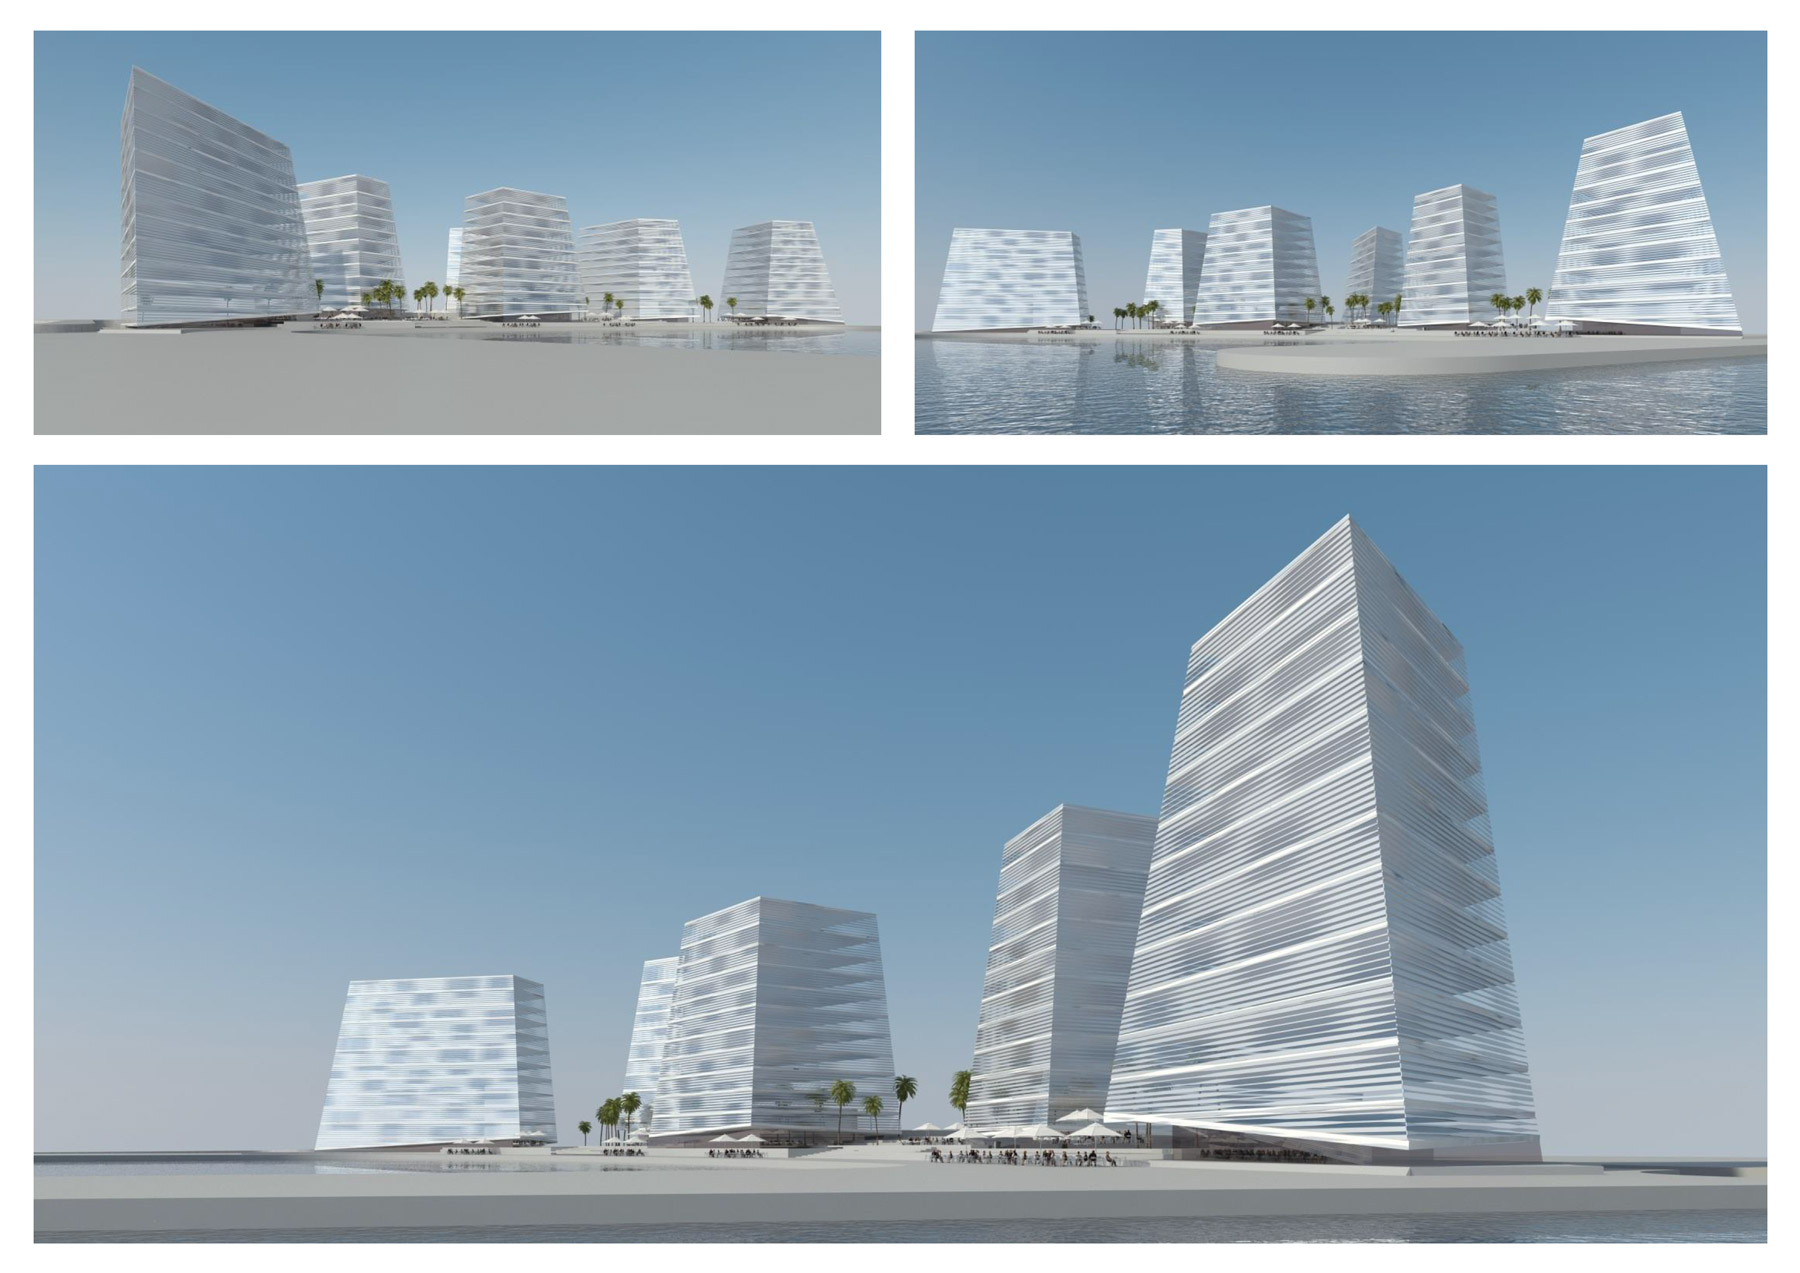 161_Lusail_S1S2_Slide_14